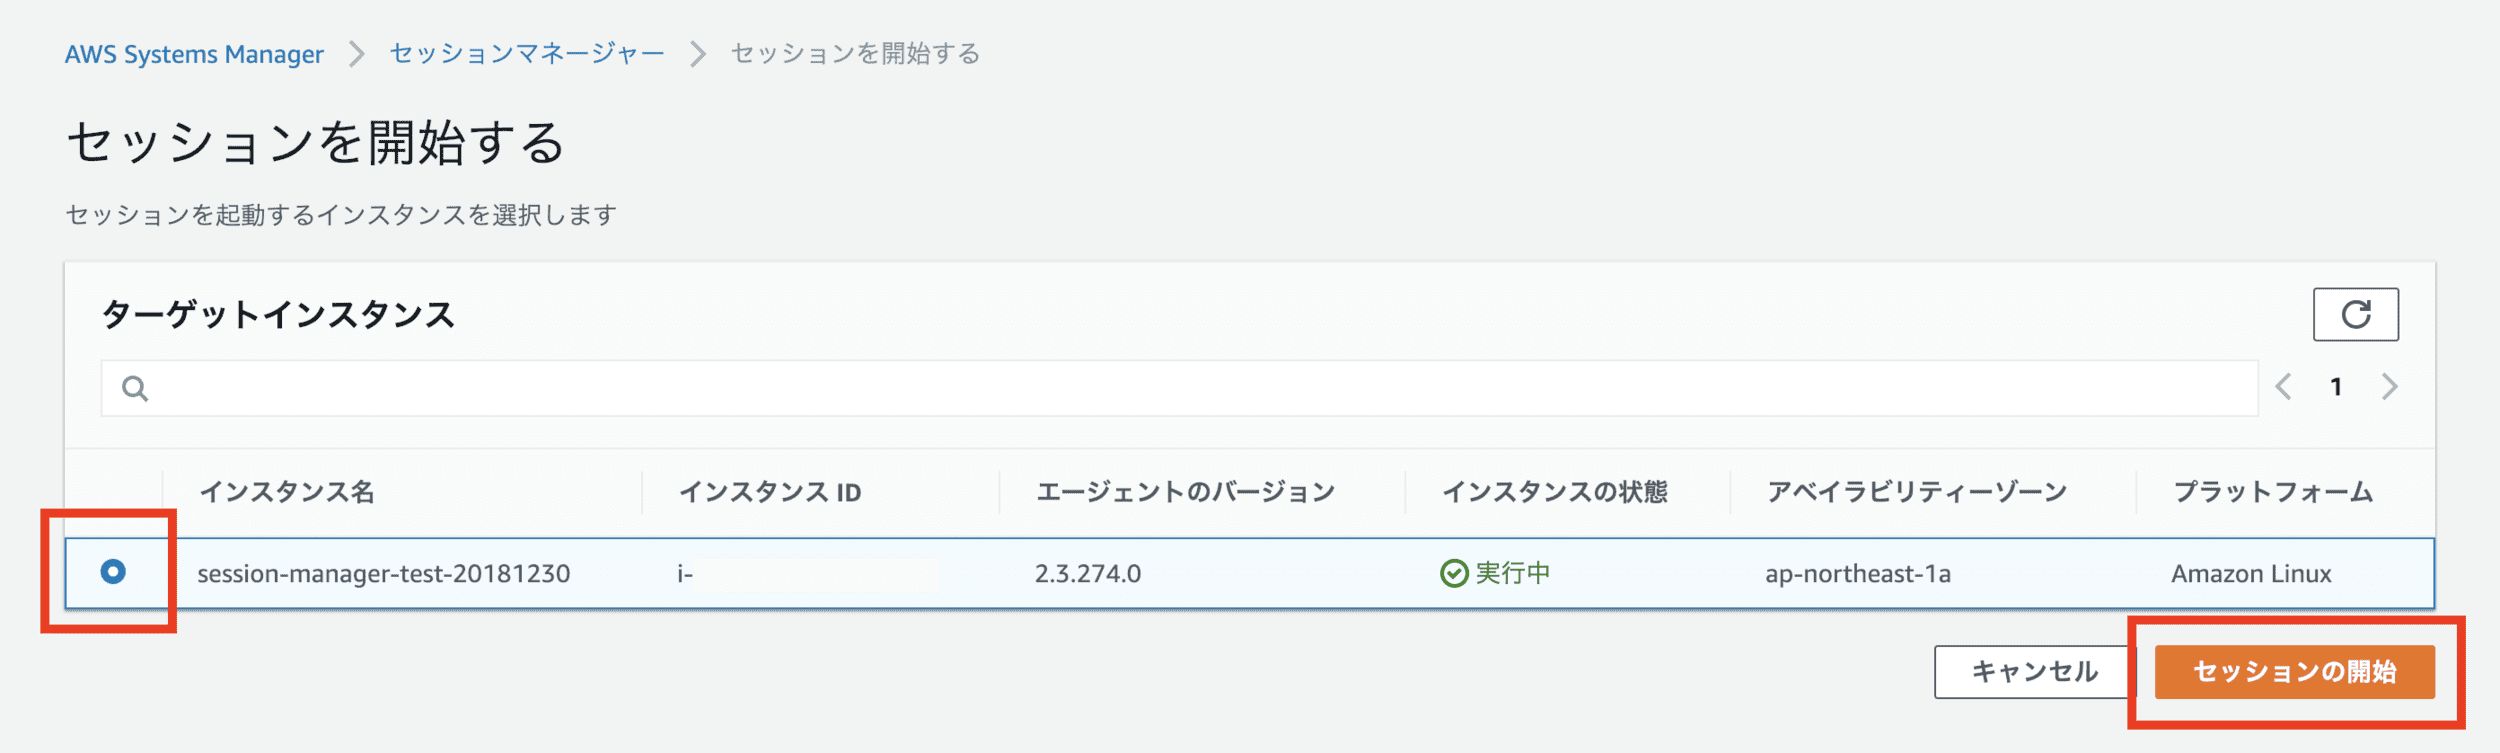 AWS Systems Managerのセッションマネージャーで安全なSSH接続を試して